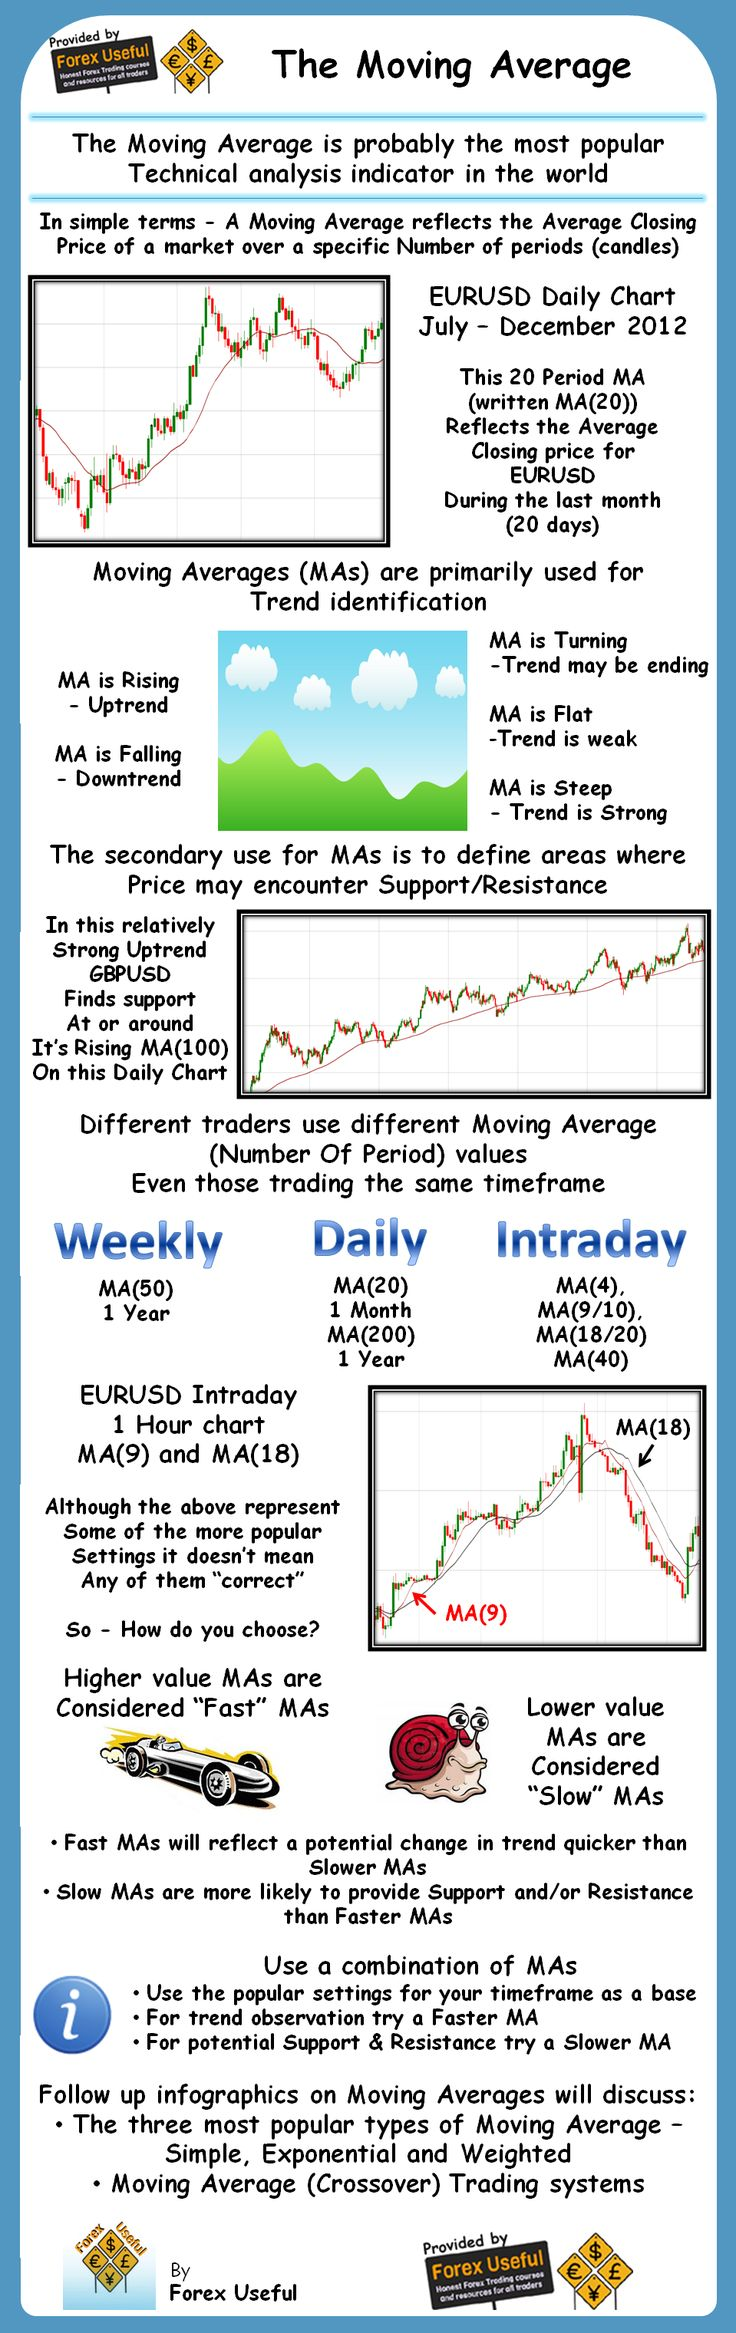 Market trading indicators